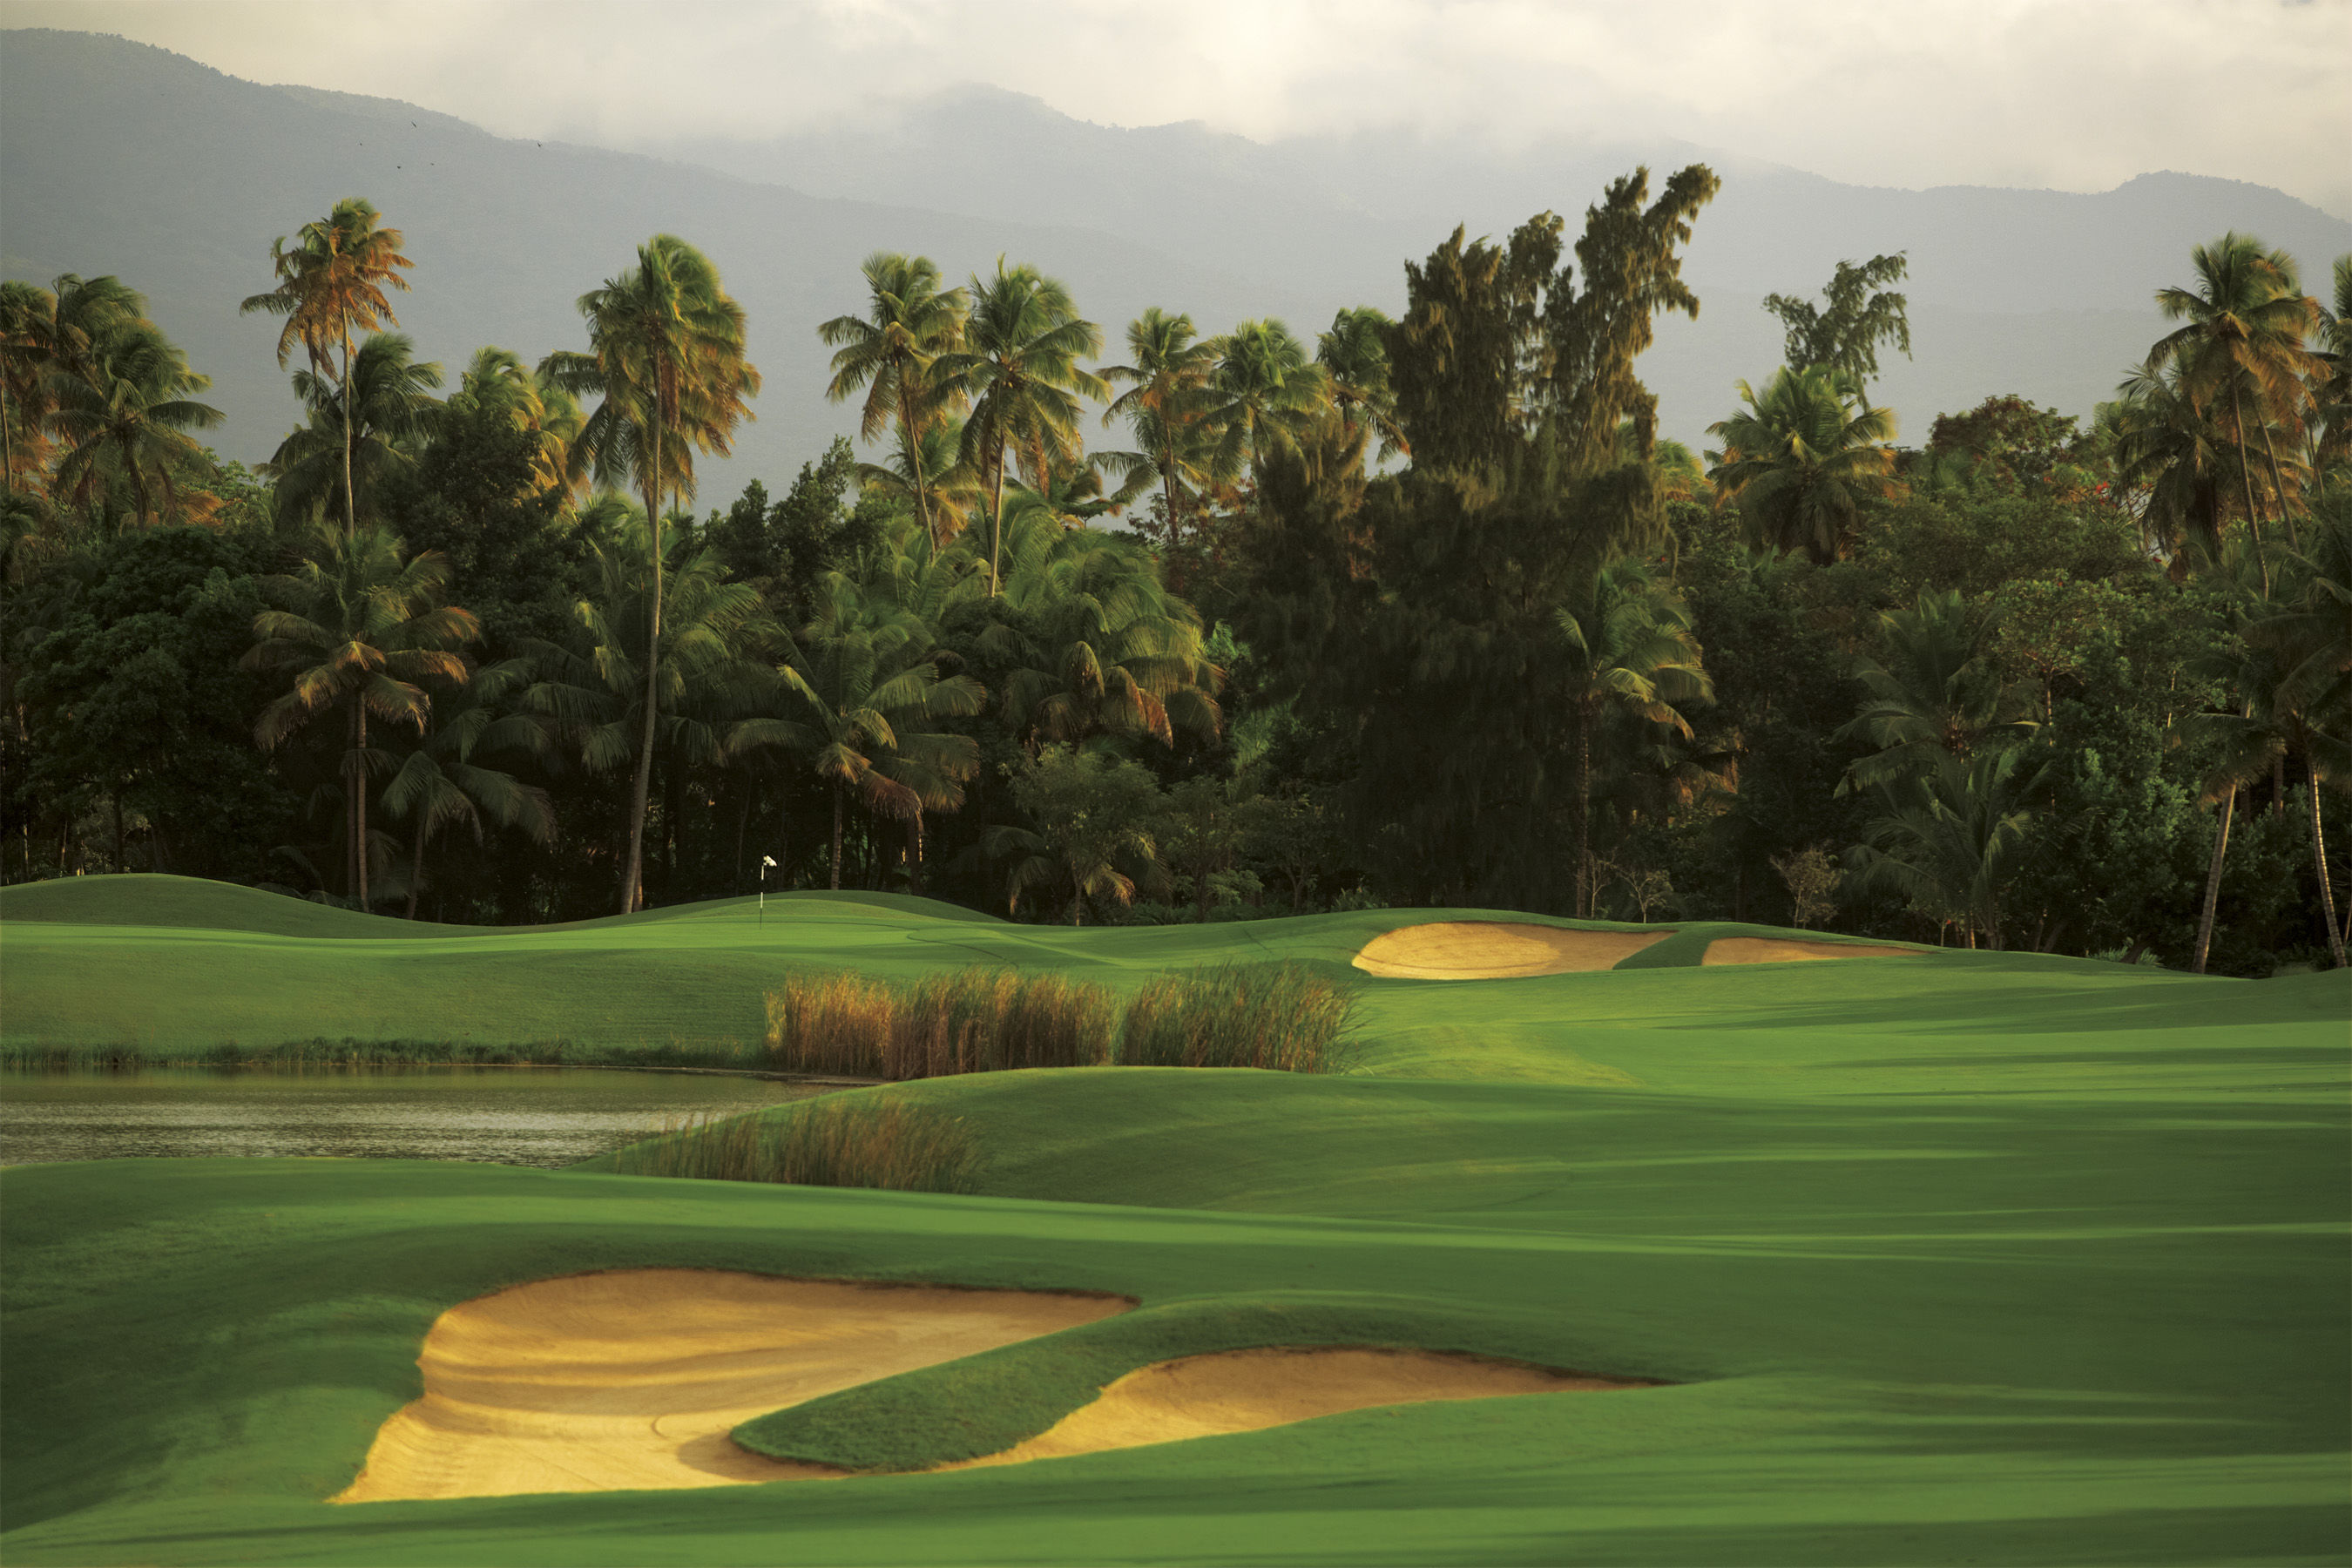 Bahia beach resort and golf club cover picture